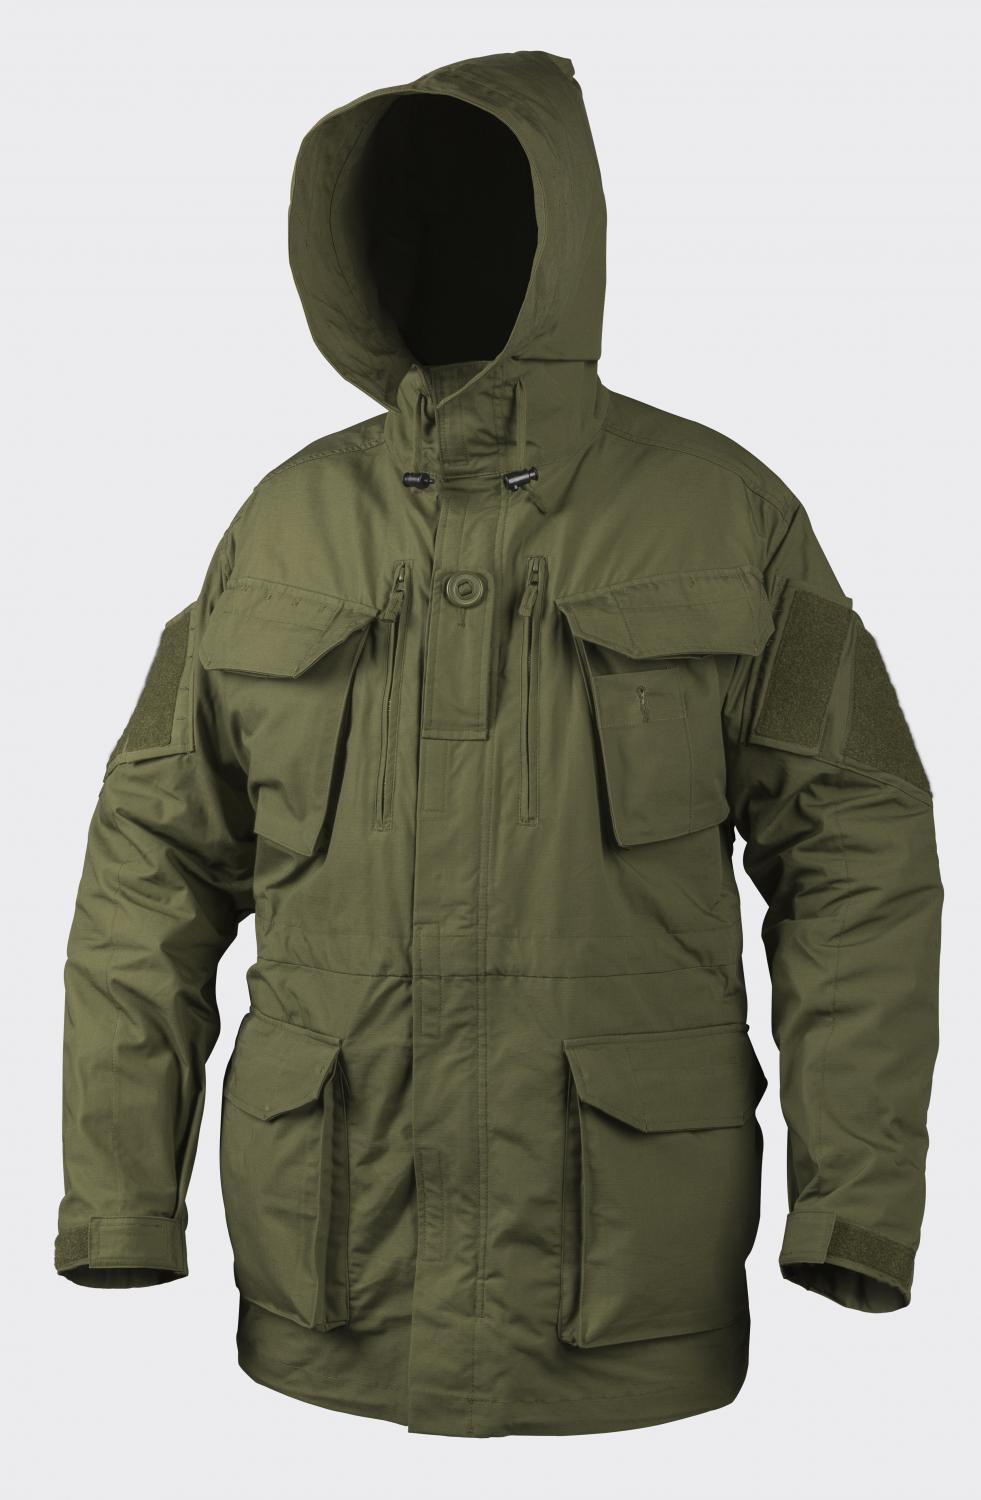 PCS (Personal Clothing System Smock) Olive Green